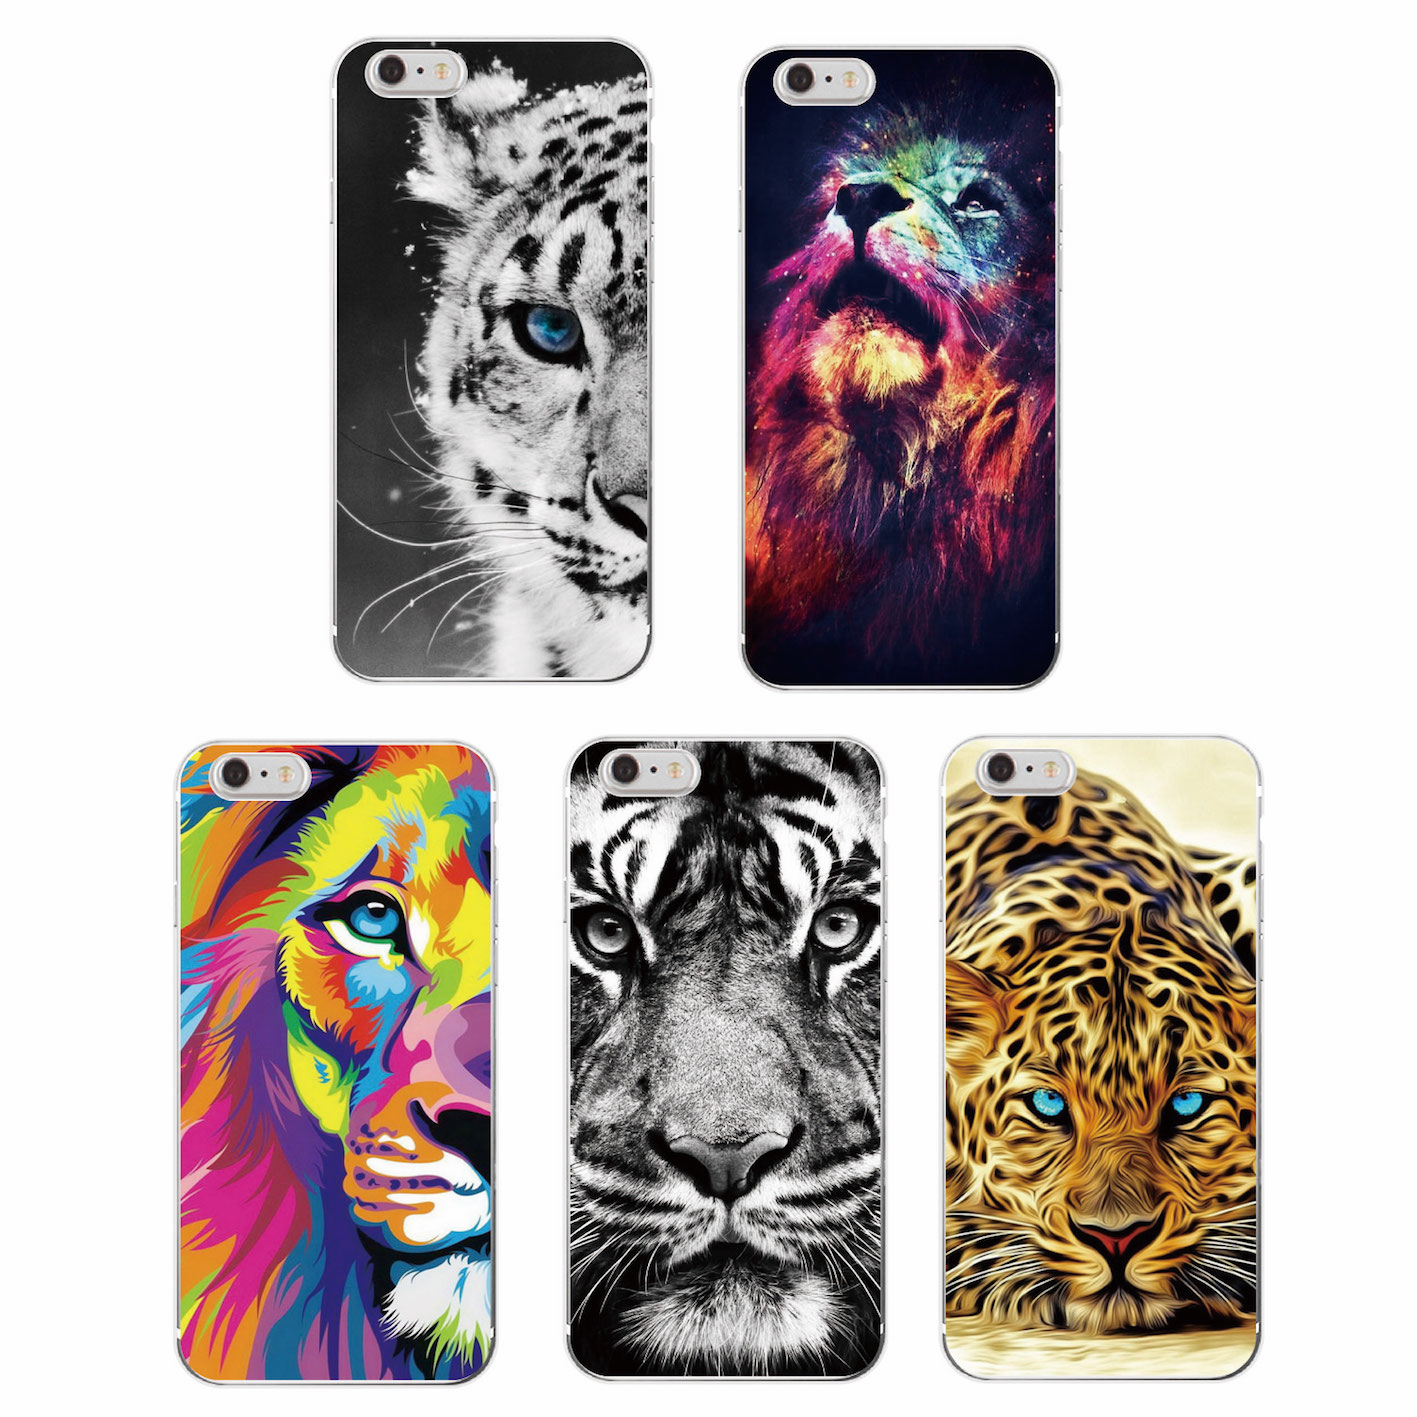 Fashion Lion Tiger panther Leopard Soft Case Coque Fundas για iPhone 11 7 7Plus 6 6S 5S 8 8Plus X XS Max SAMSUNG GALSXY S8 S8P